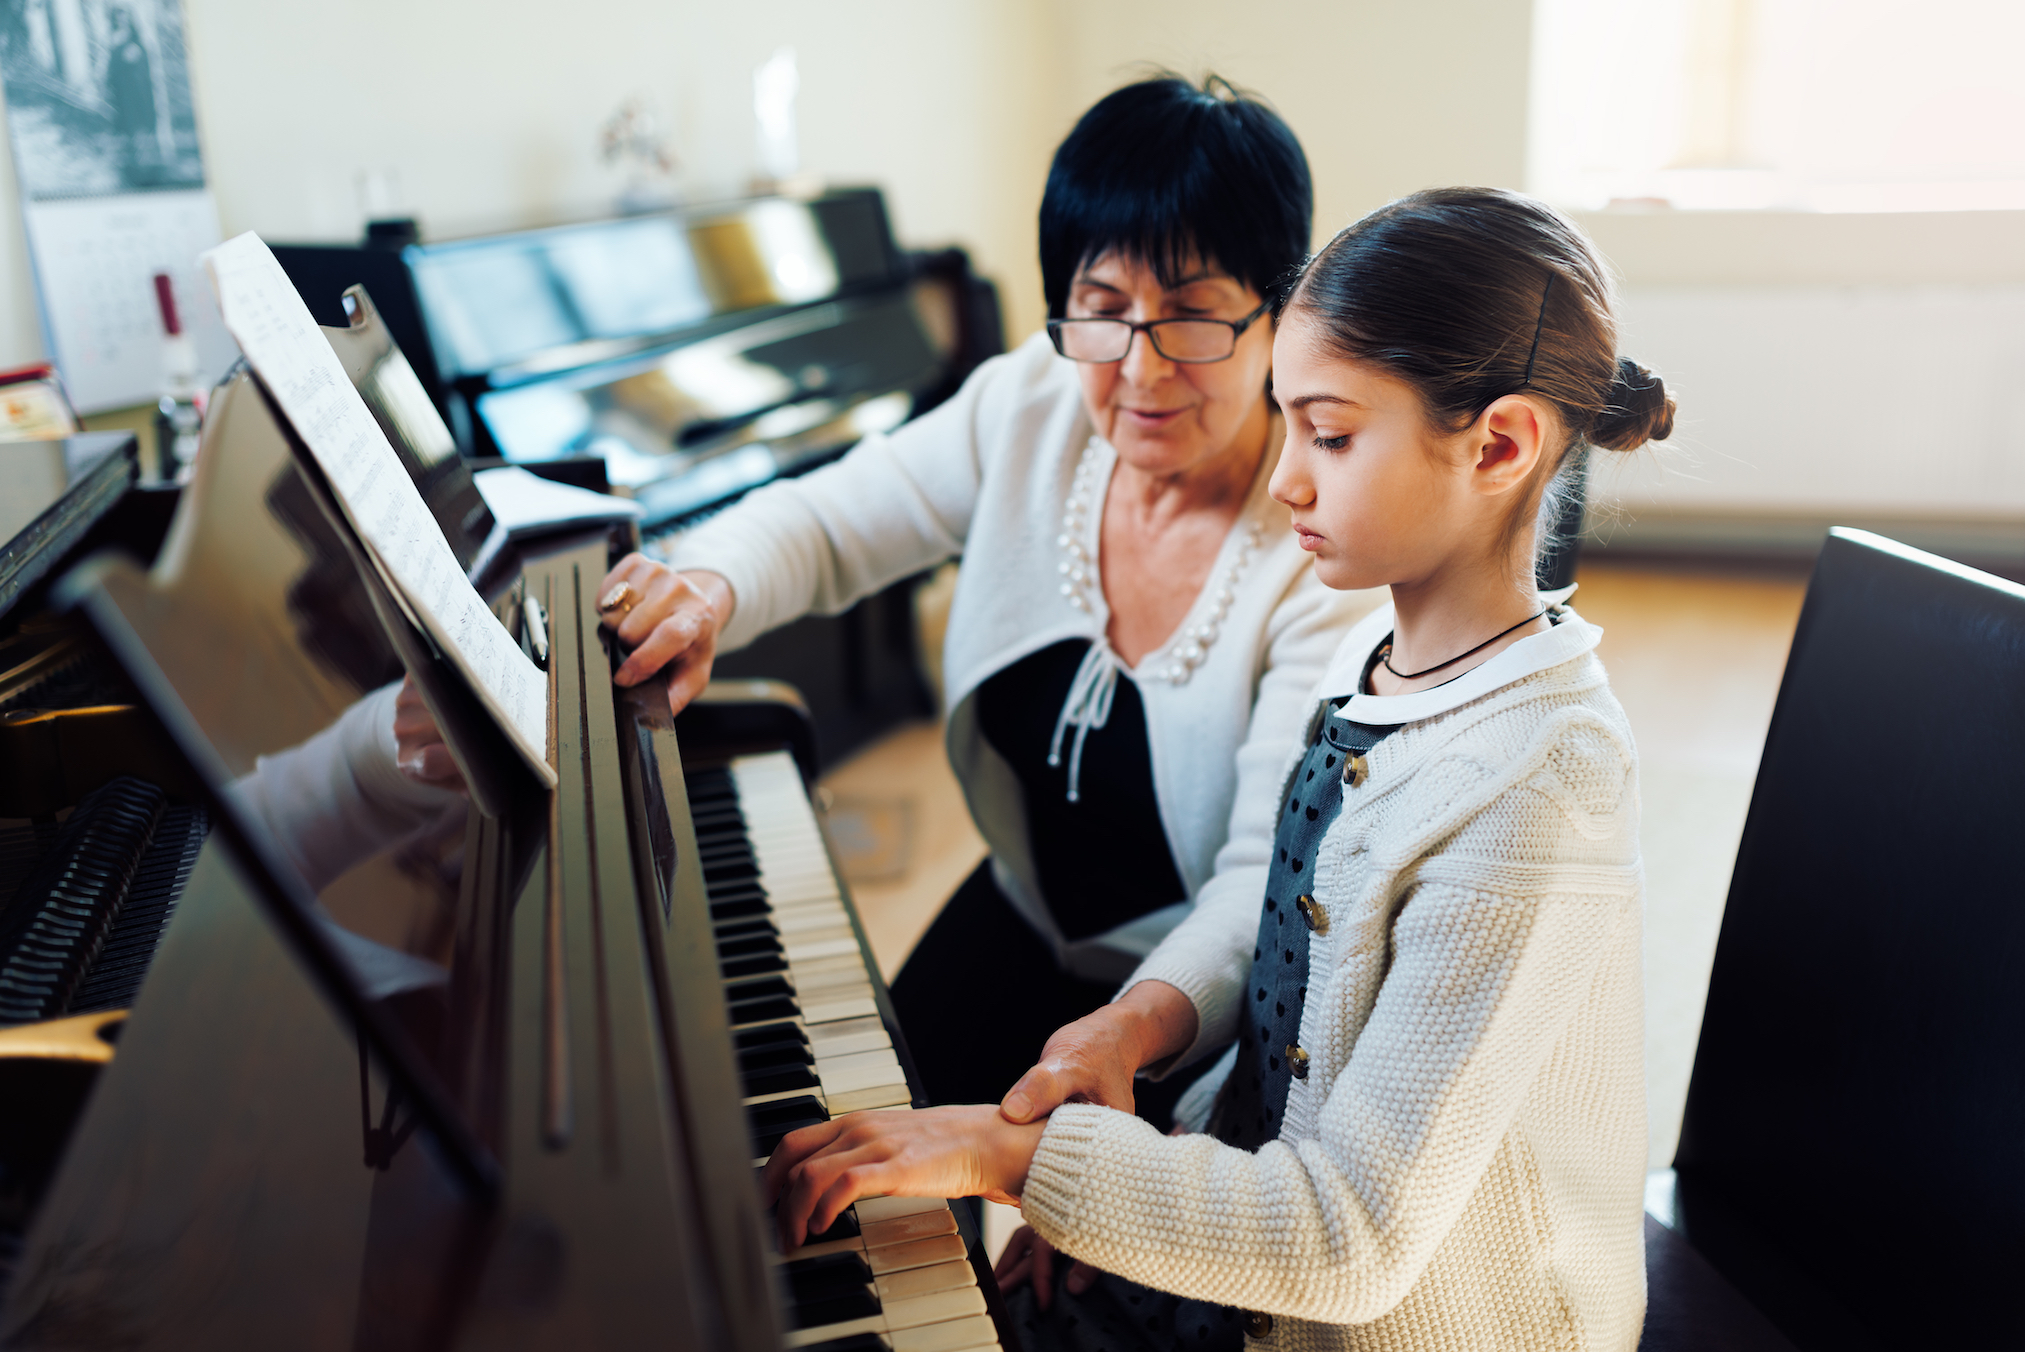 Music lessons can help improve language learning skills in children even more so than reading and comprehension lessons.